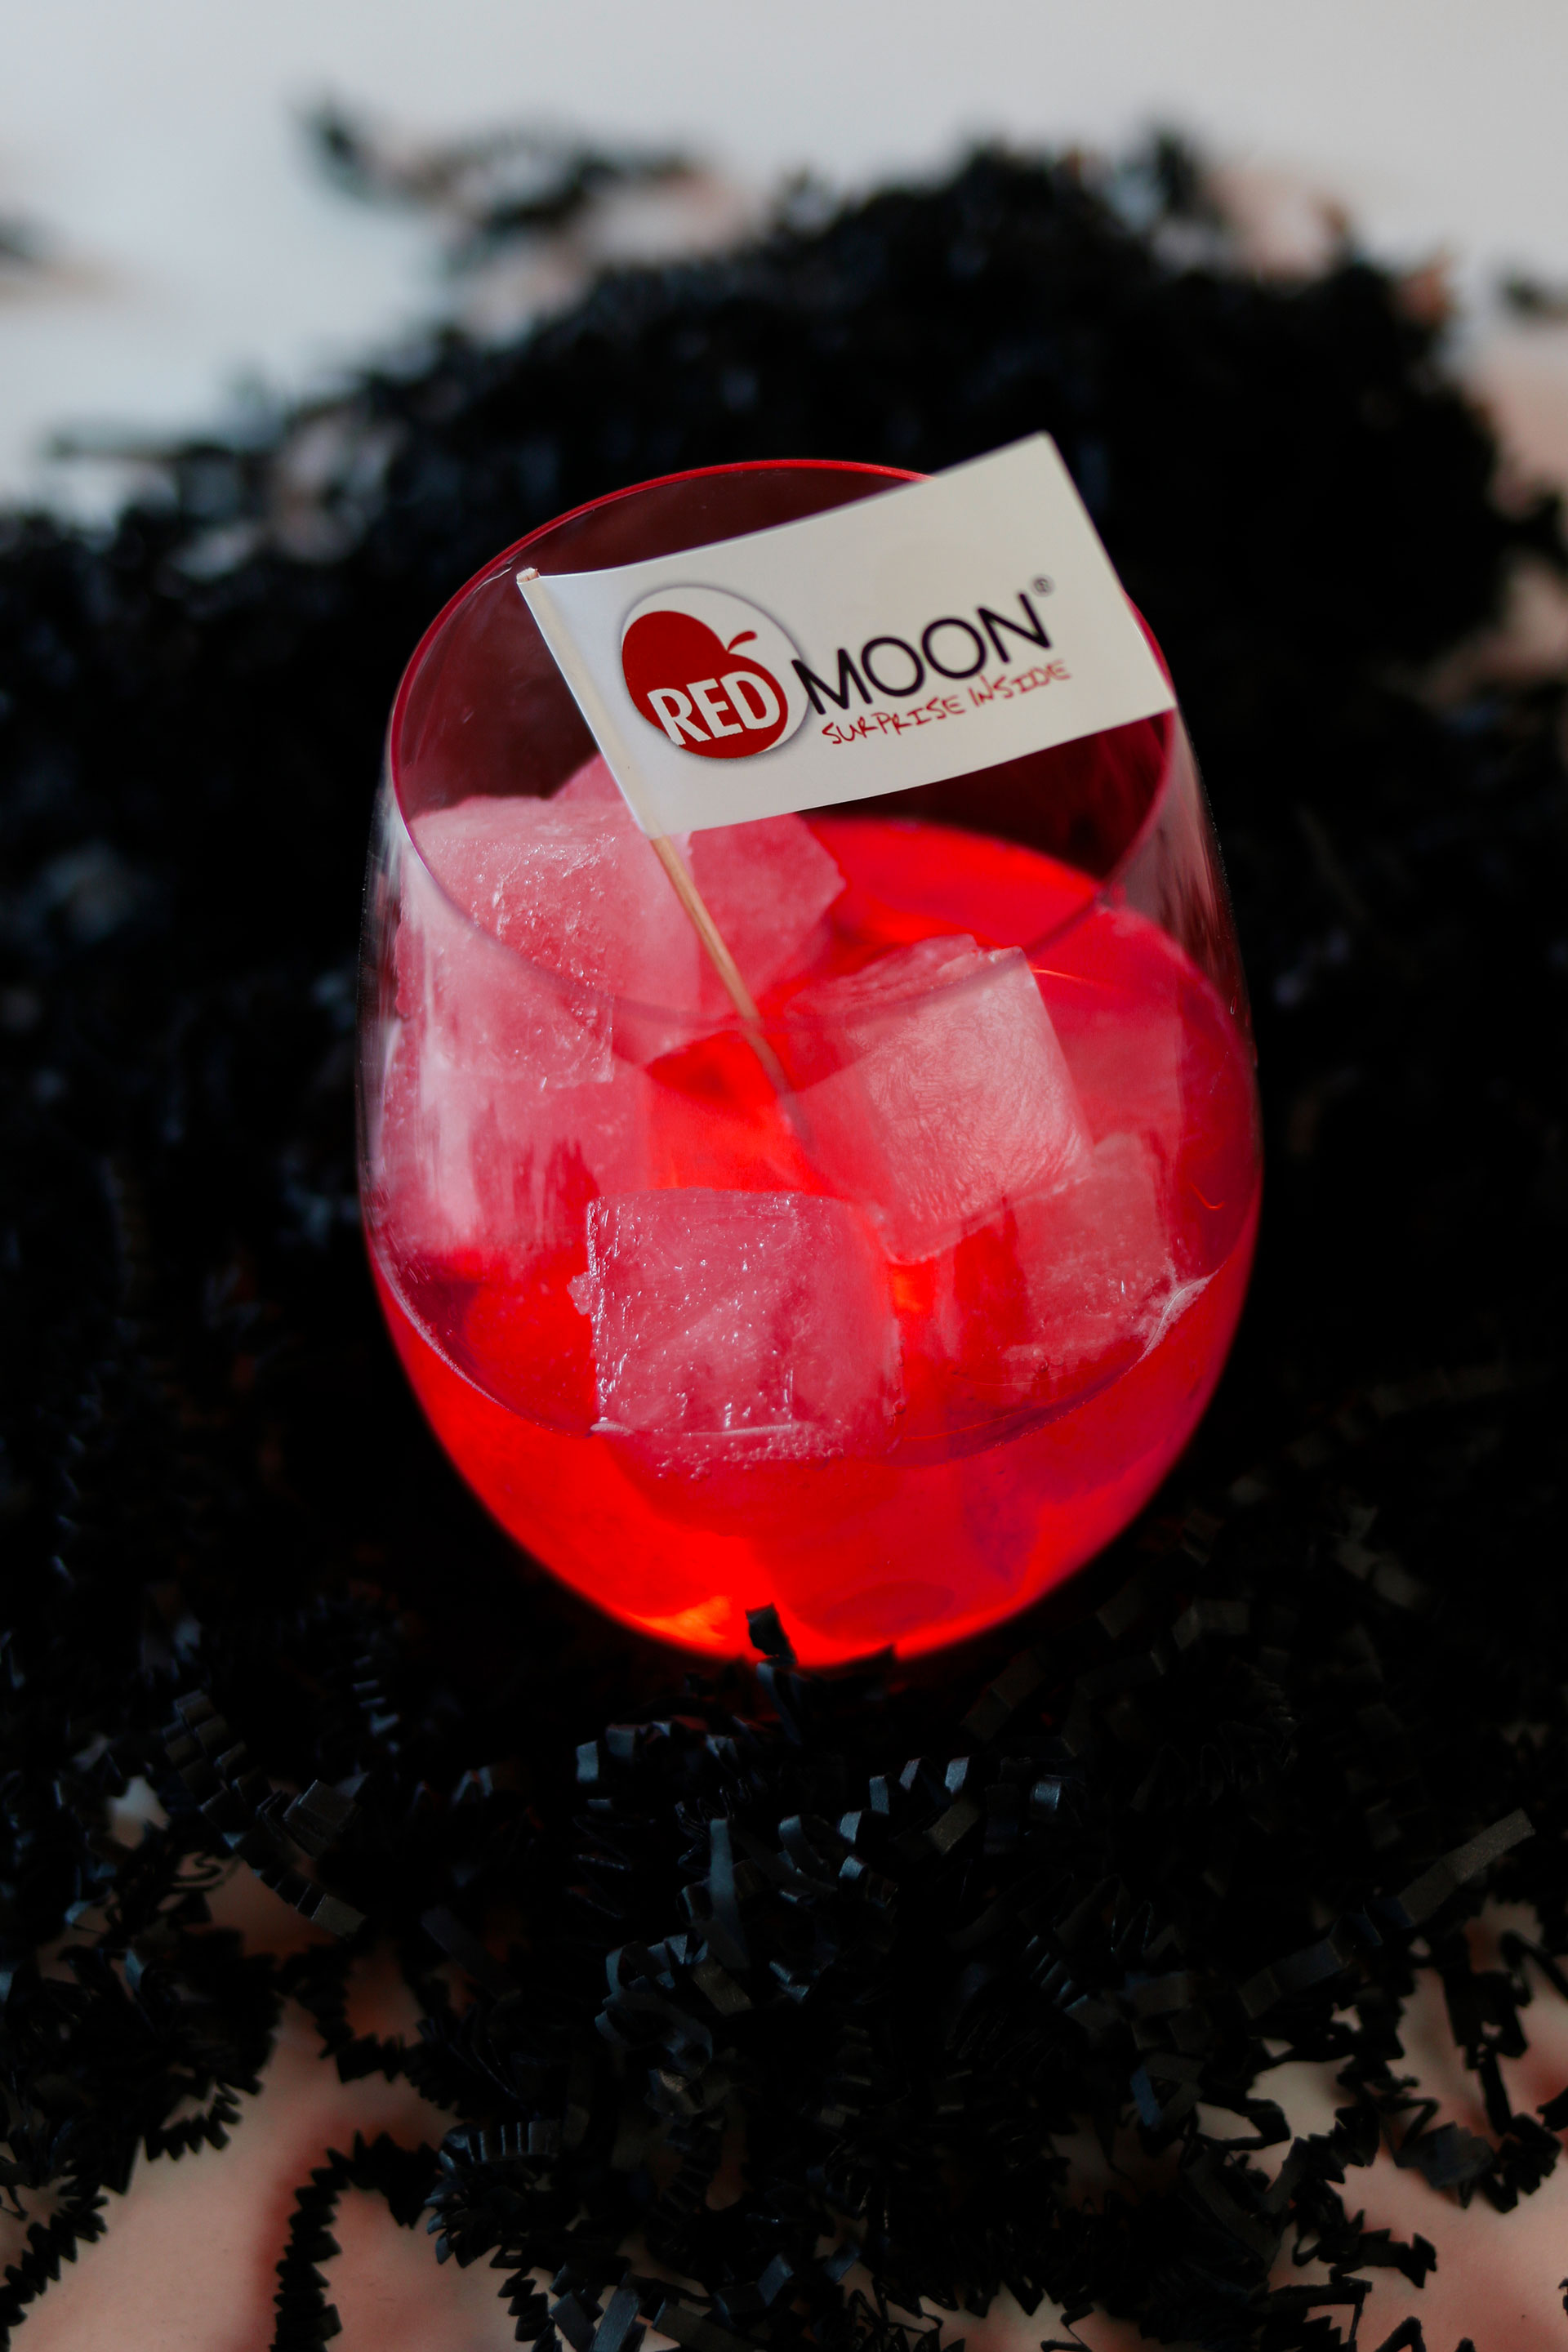 red moon apple - photo #23